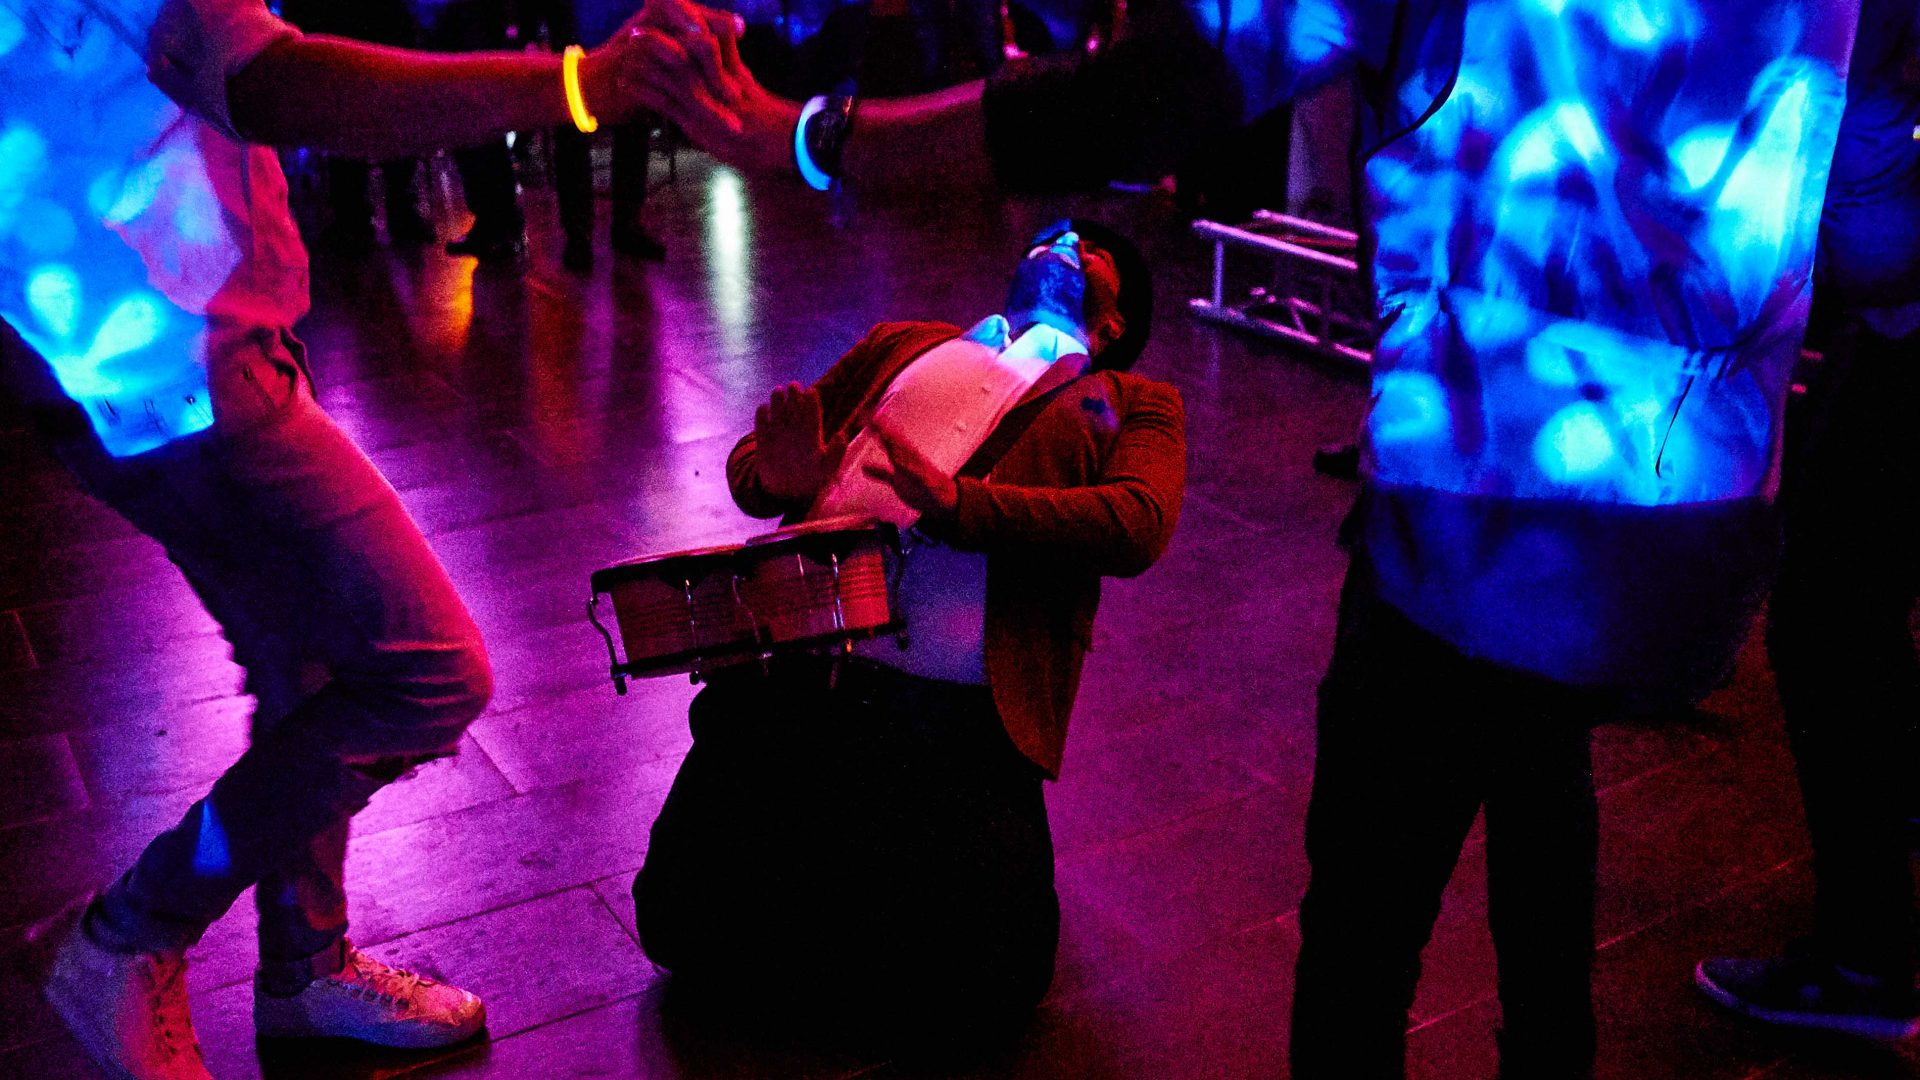 A drum player on a dance floor in Erbil, Iraq.